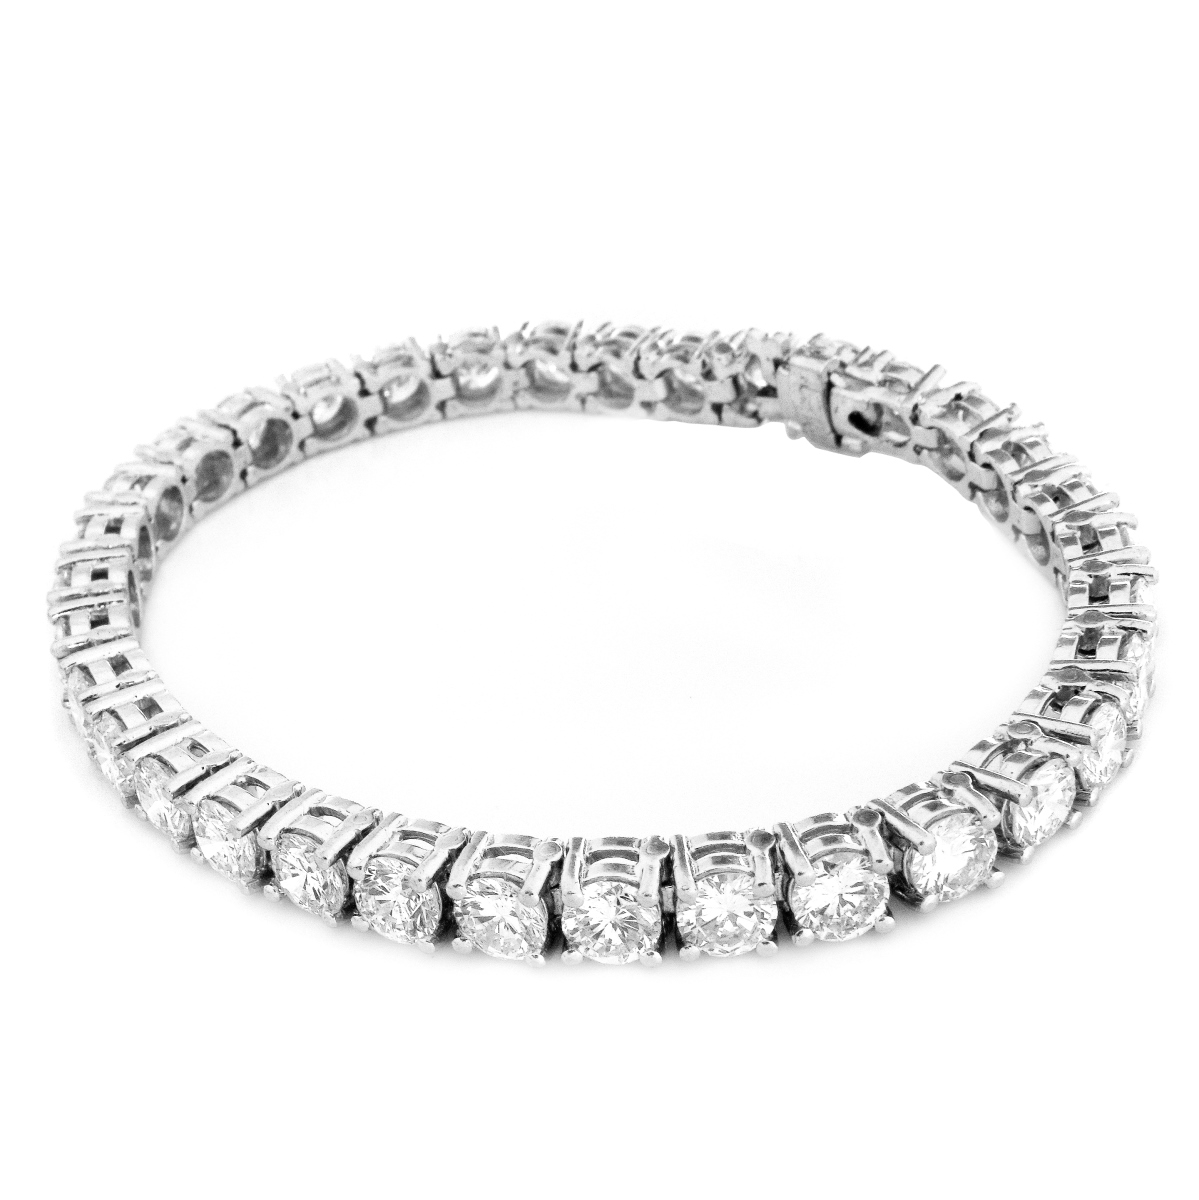 Vintage 13.0ct TW Diamond and Platinum Bracelet